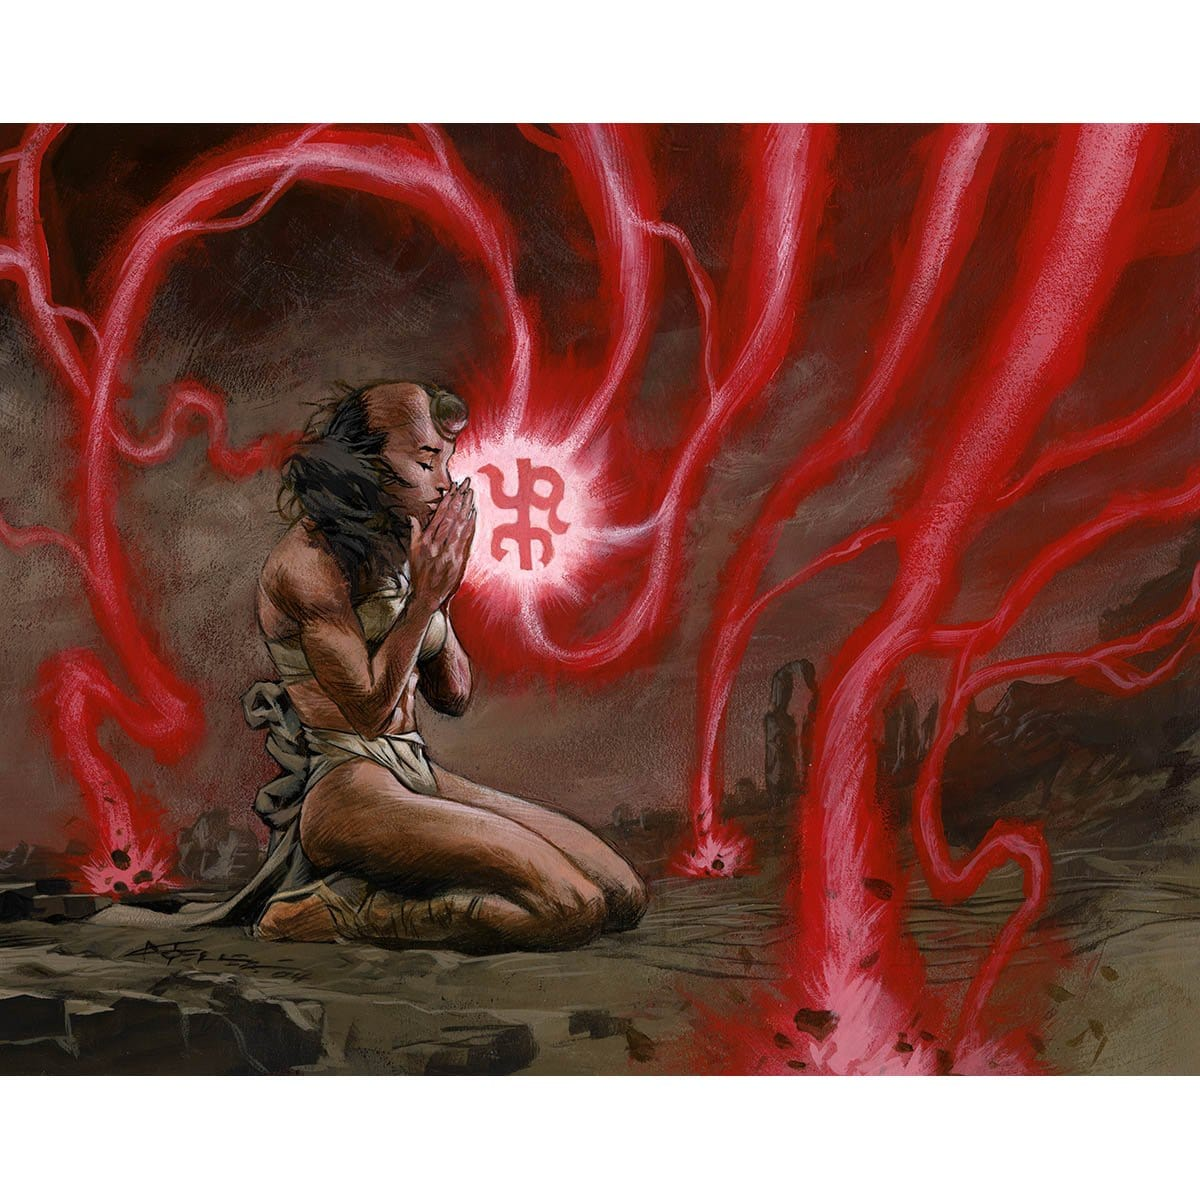 Inner Fire Print - Print - Original Magic Art - Accessories for Magic the Gathering and other card games